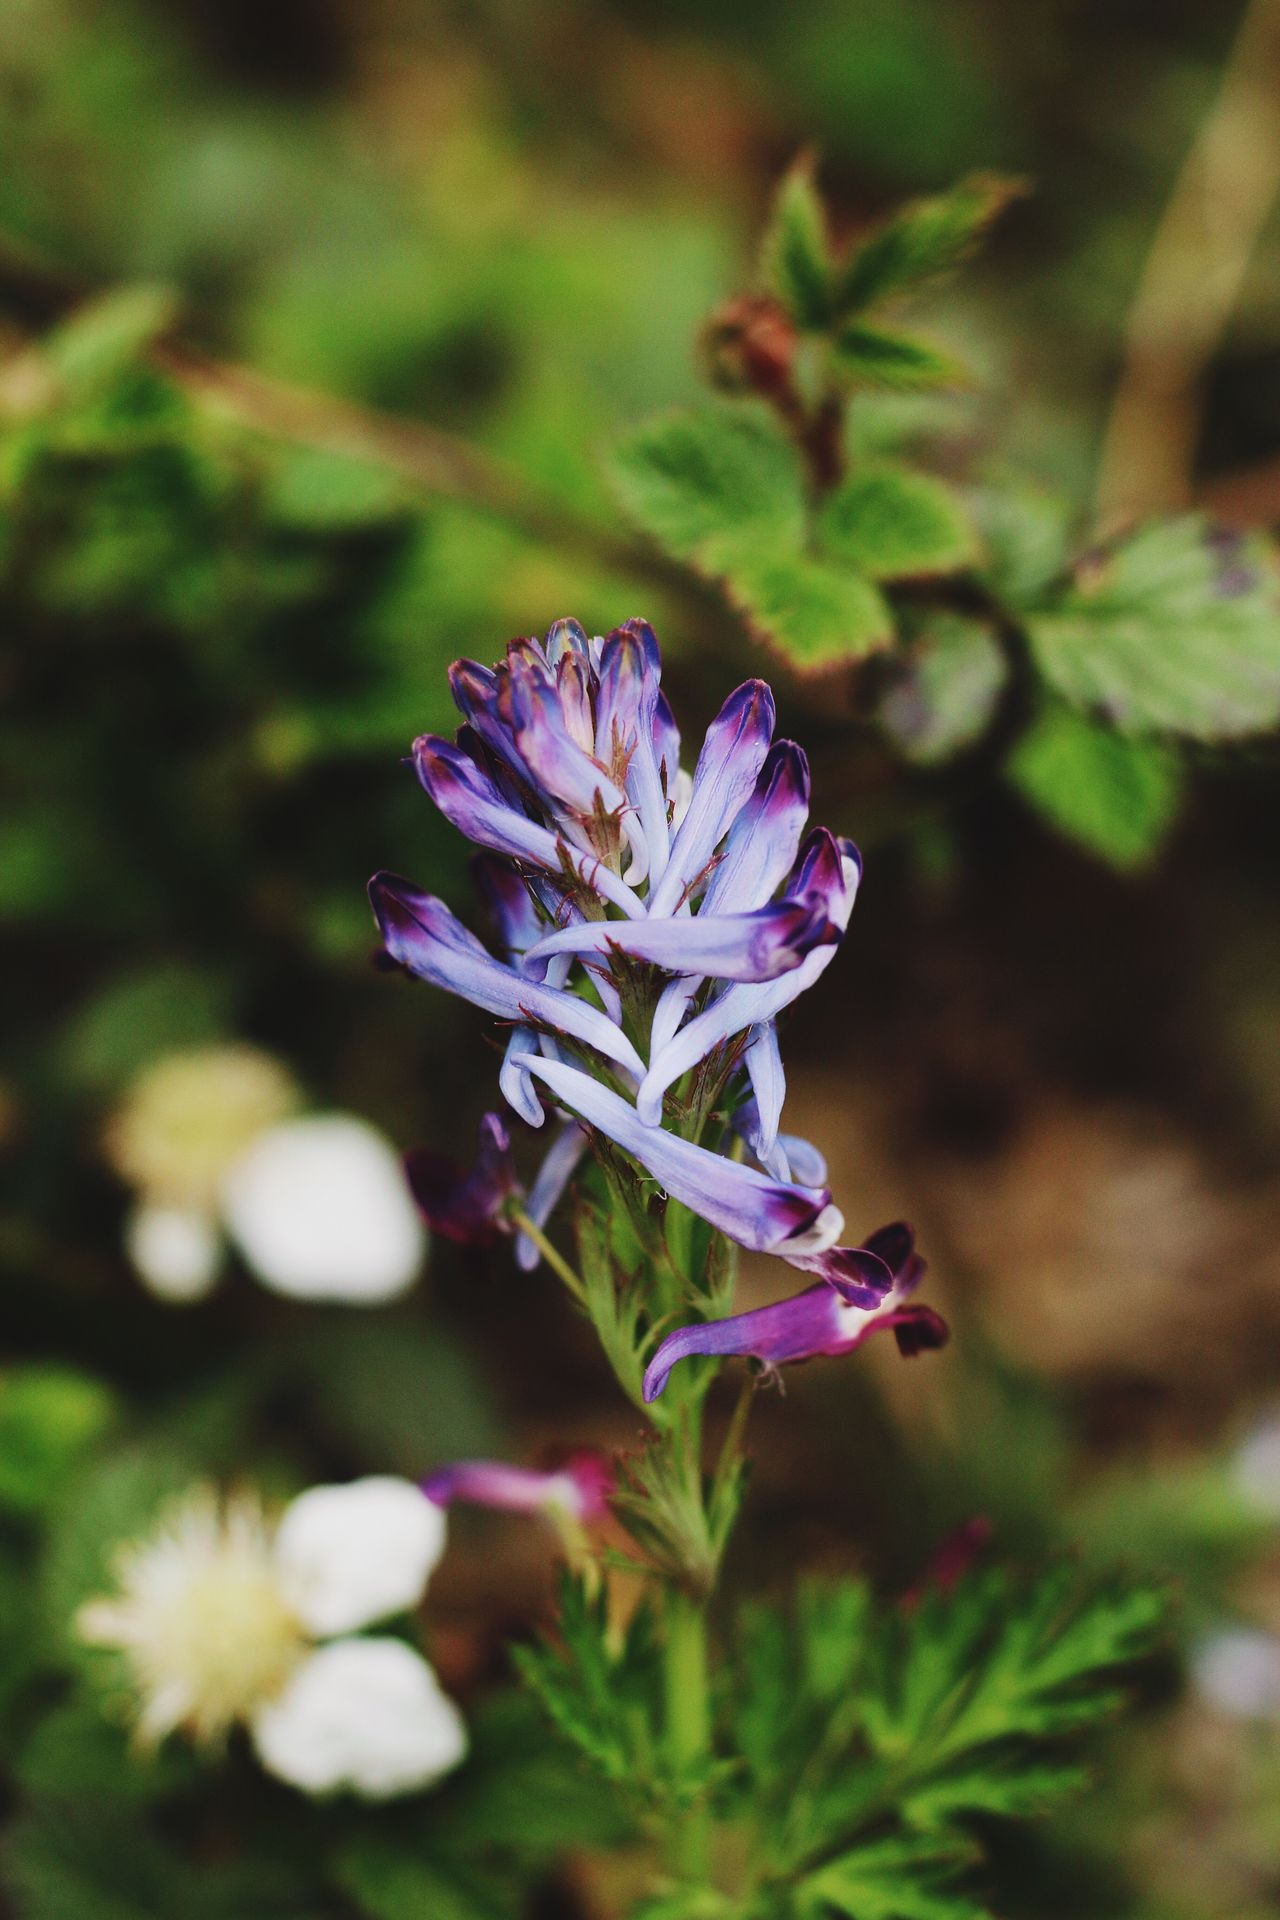 Corydalis Incisa Flower Nature Growth Purple Beauty In Nature Freshness Fragility Plant No People Close-up Outdoors Day Flower Head Beautiful Nature EyeEmNewHere EyeEm Gallery From My Point Of View Wildlife & Nature Spring Springtime Blossom Beauty In Nature Low Angle View Plant